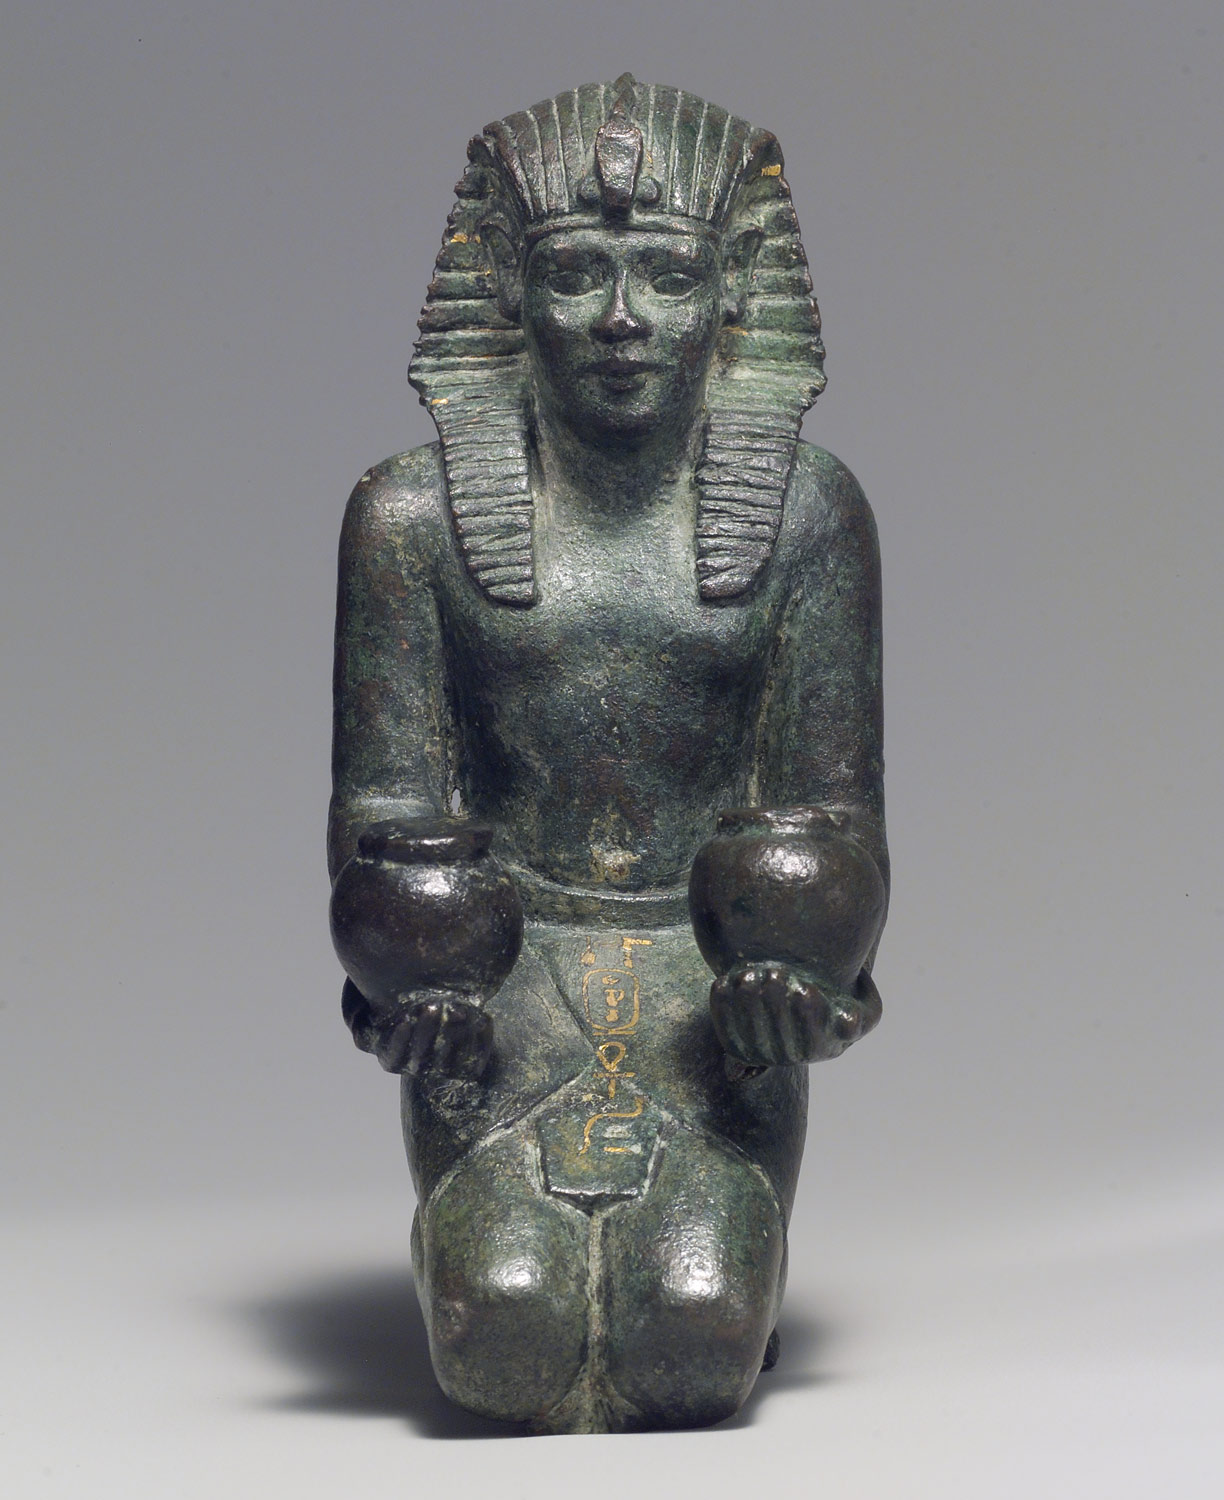 Kneeling statuette of King Amasis